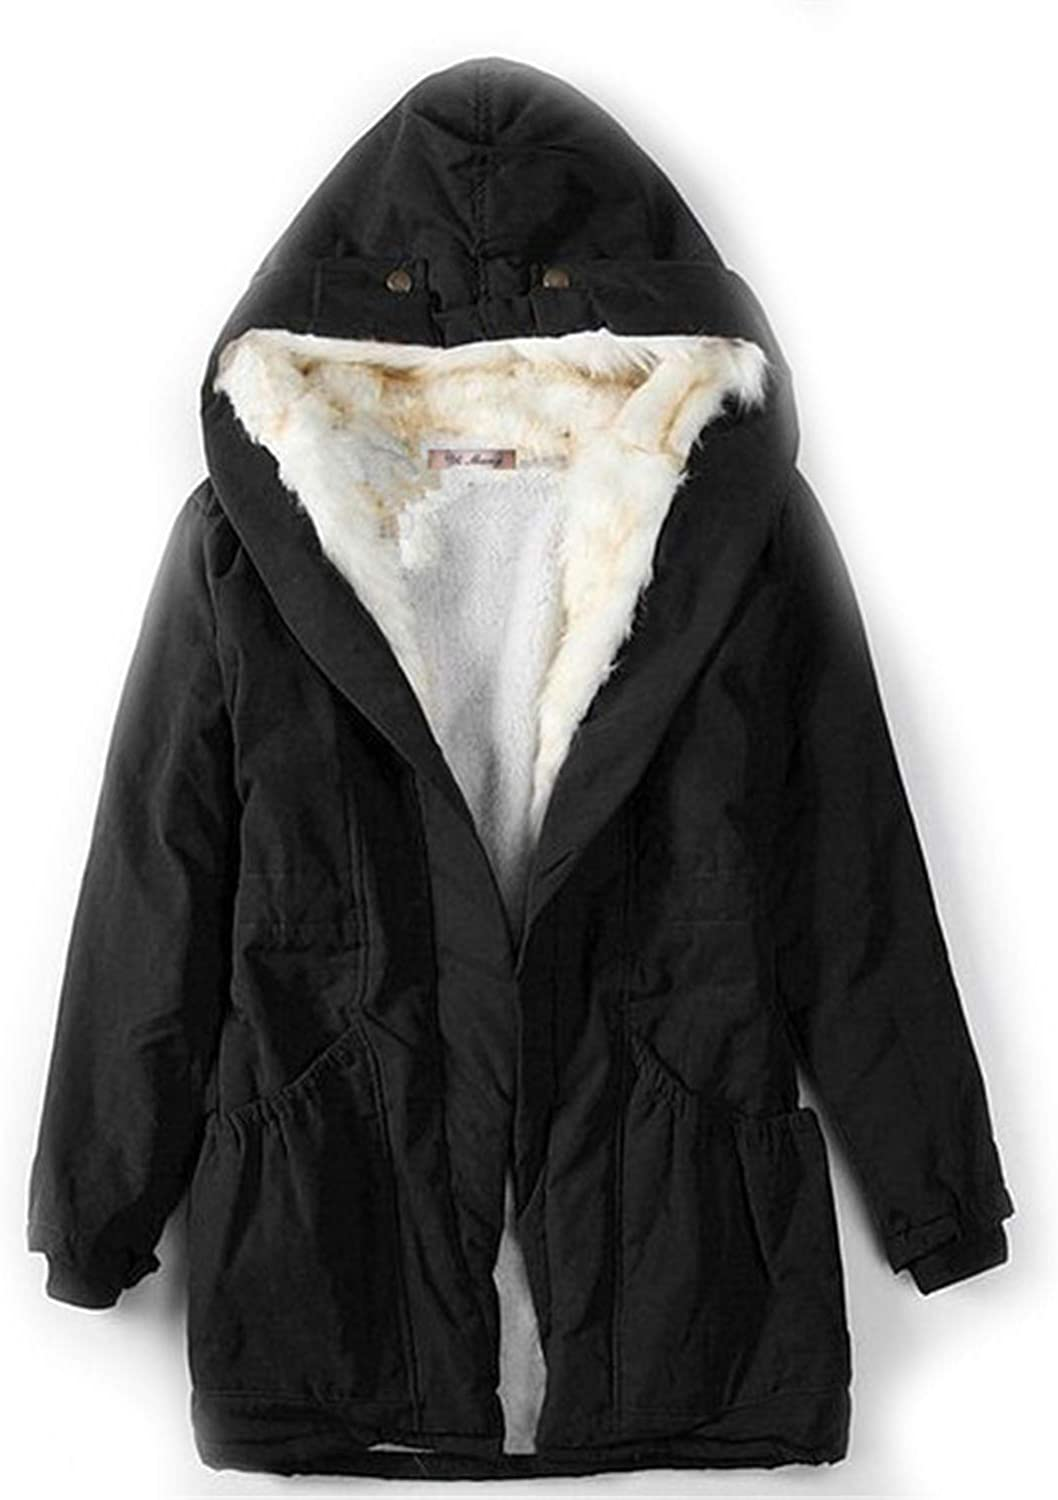 I'm good at you Solid color Fur Parkas Cotton Padded Hooded Jacket Winter Coat Women Casual Parka Winter Jacket